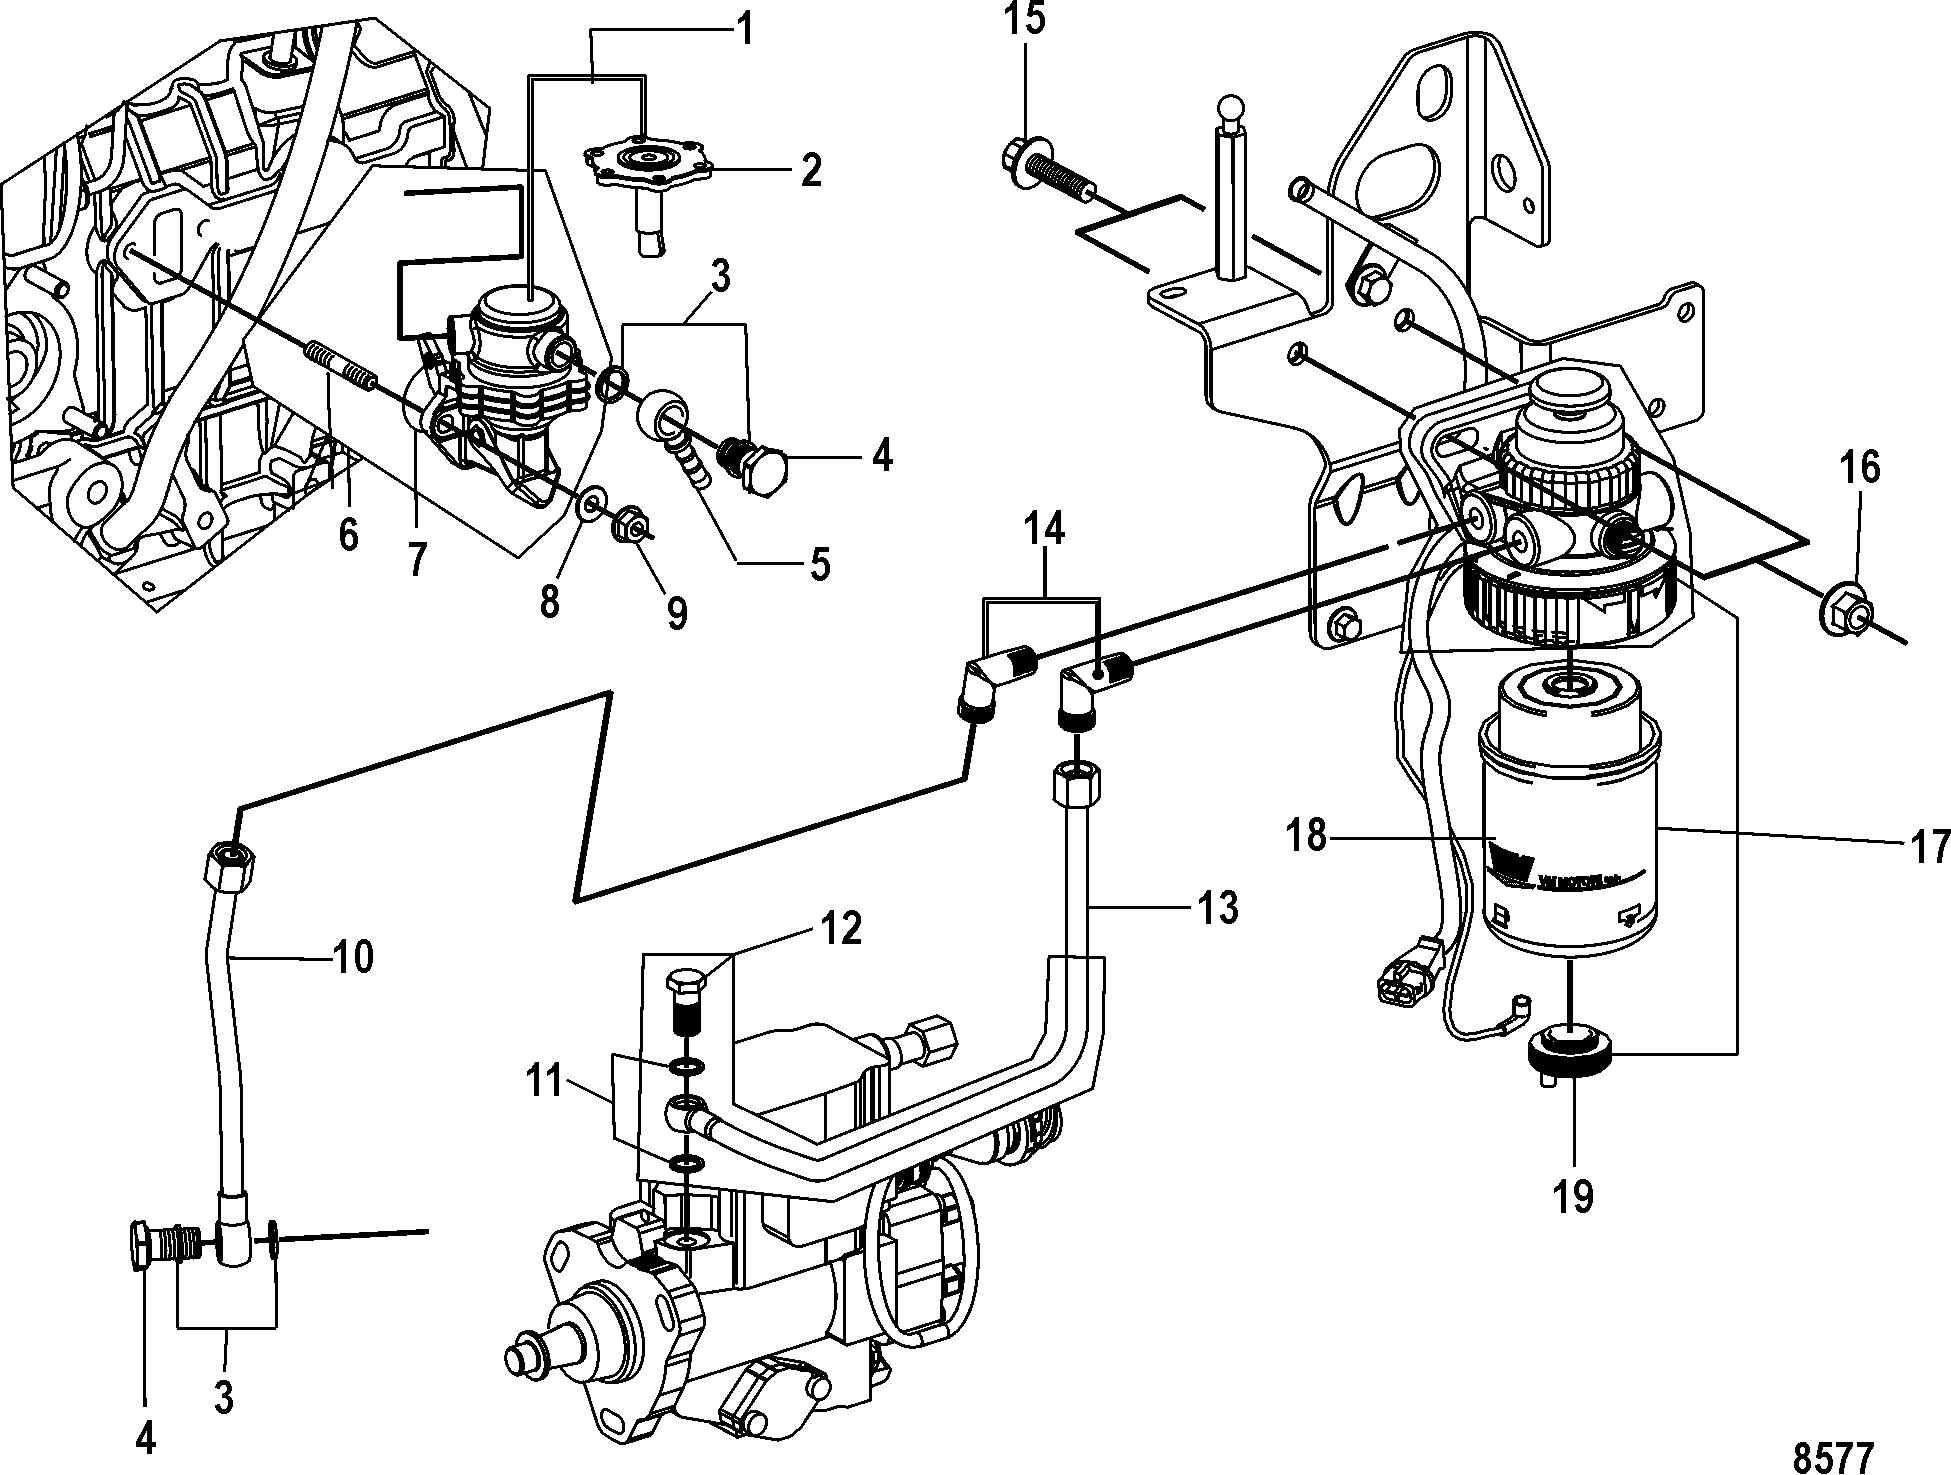 3 Liter Mercruiser Engine Diagram N N